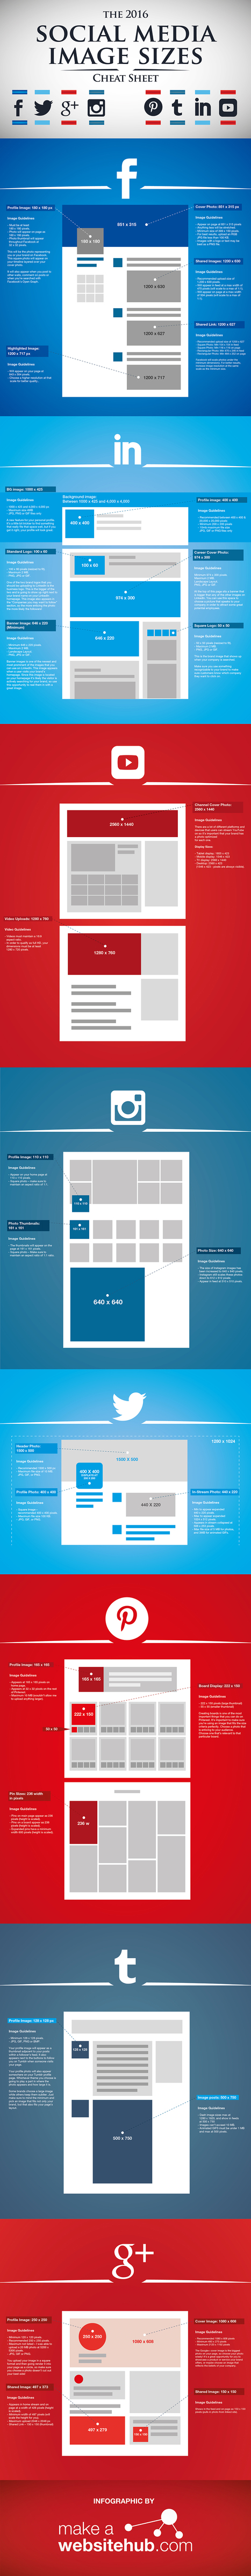 2016 Social Media Image Sizes Cheat Sheet | Infographic | Social Media and its influence | Scoop.it